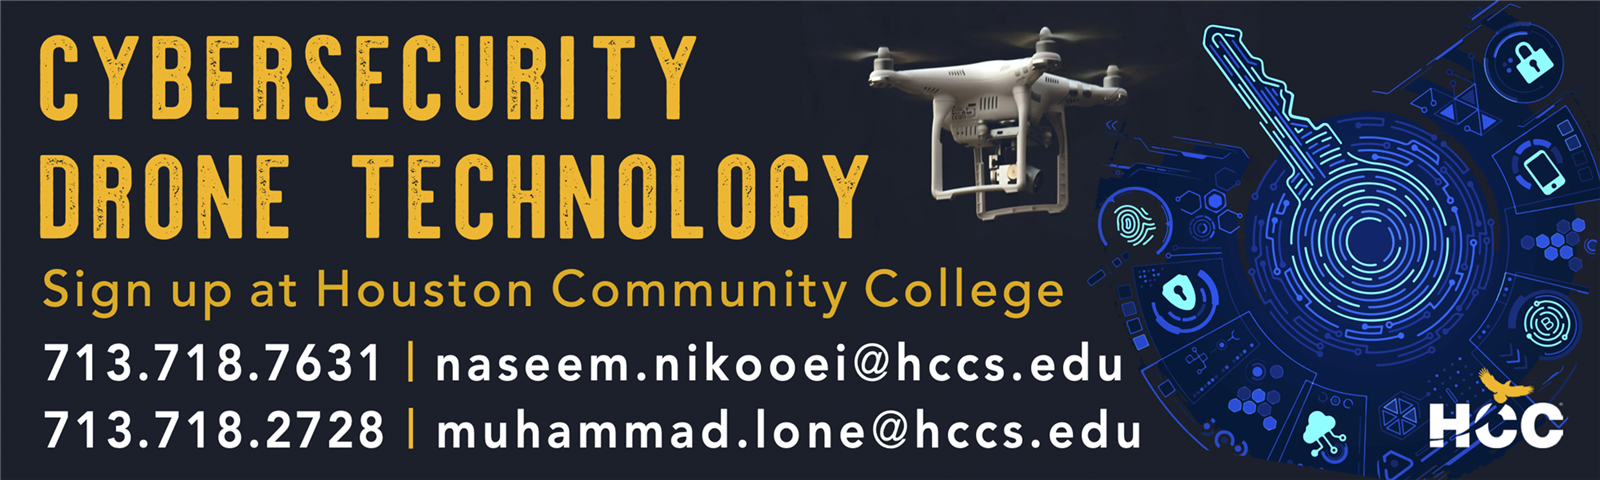 Paid Ad: Houston Community College - Cybersecurity and Drone Technology Programs